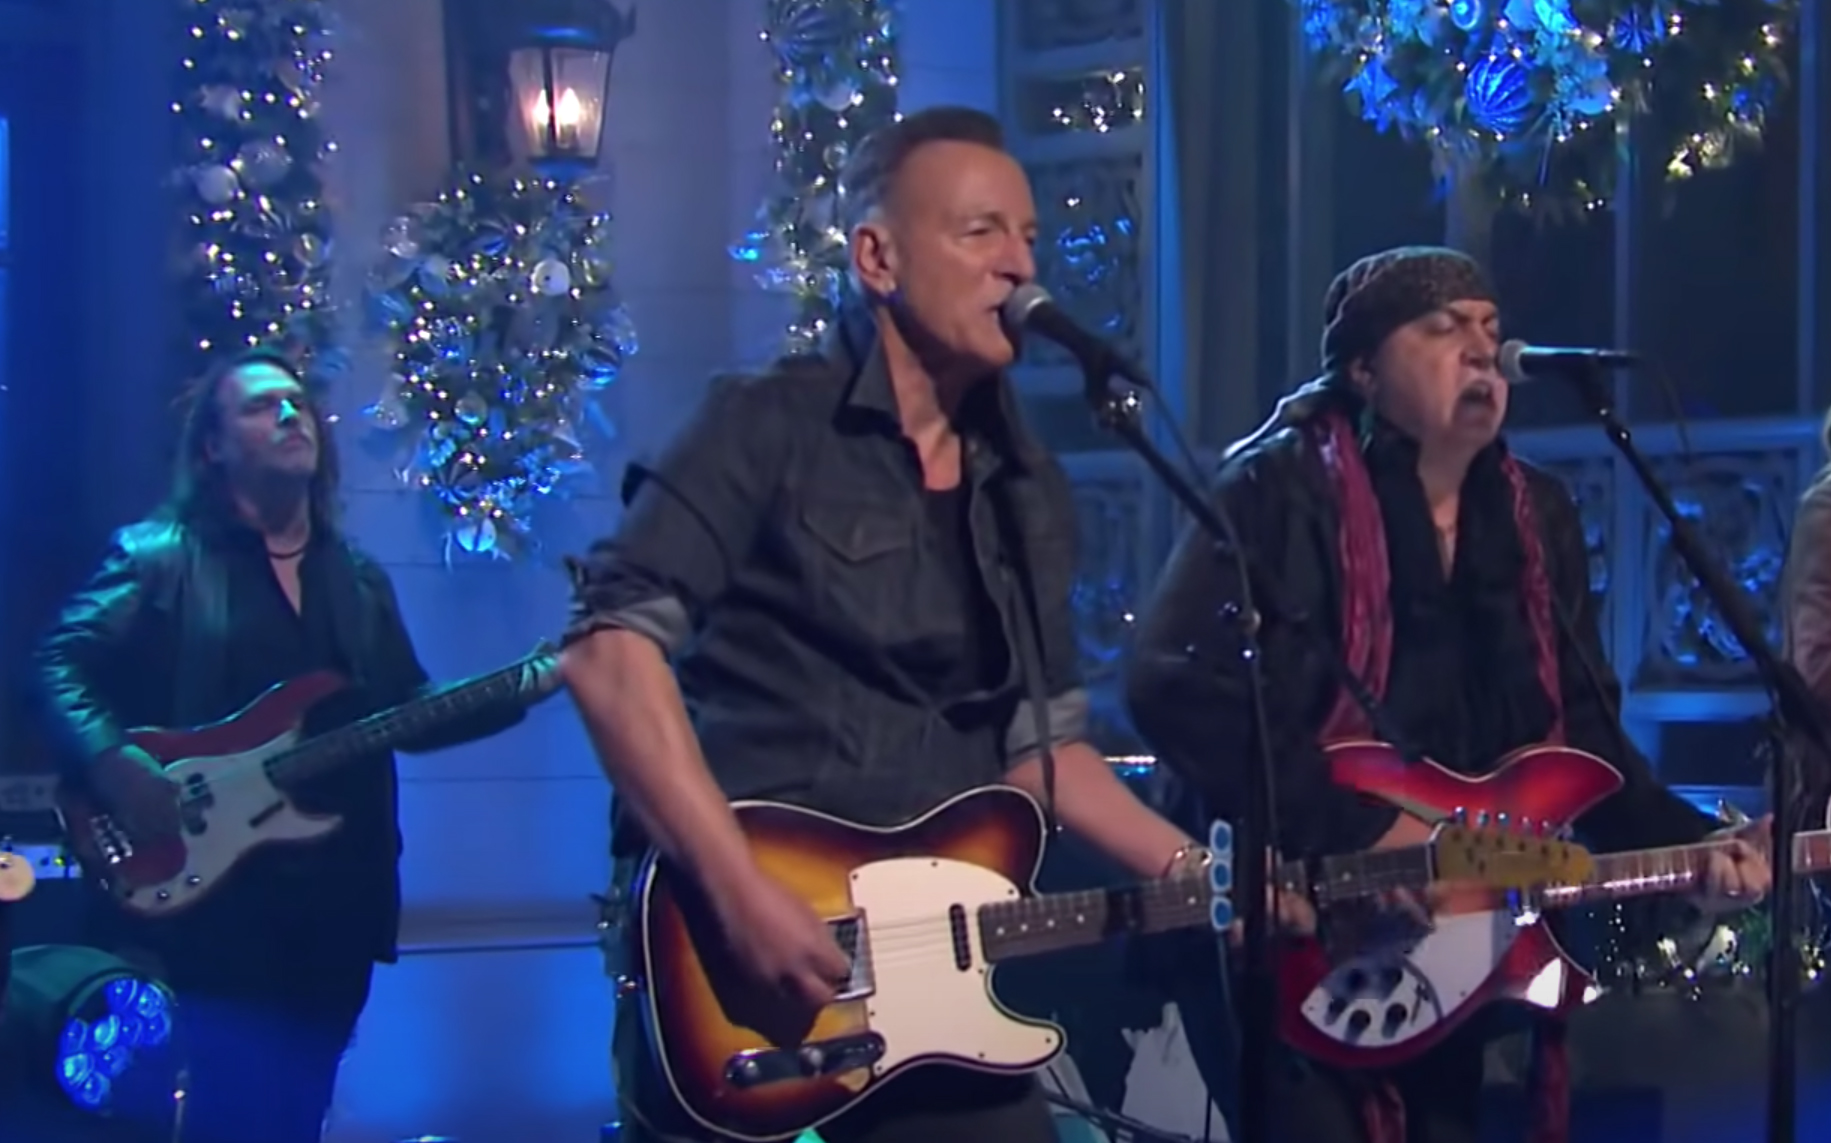 Bruce Springsteen Calls On Bassist From Upstate Ny For Snl Performance Newyorkupstate Com